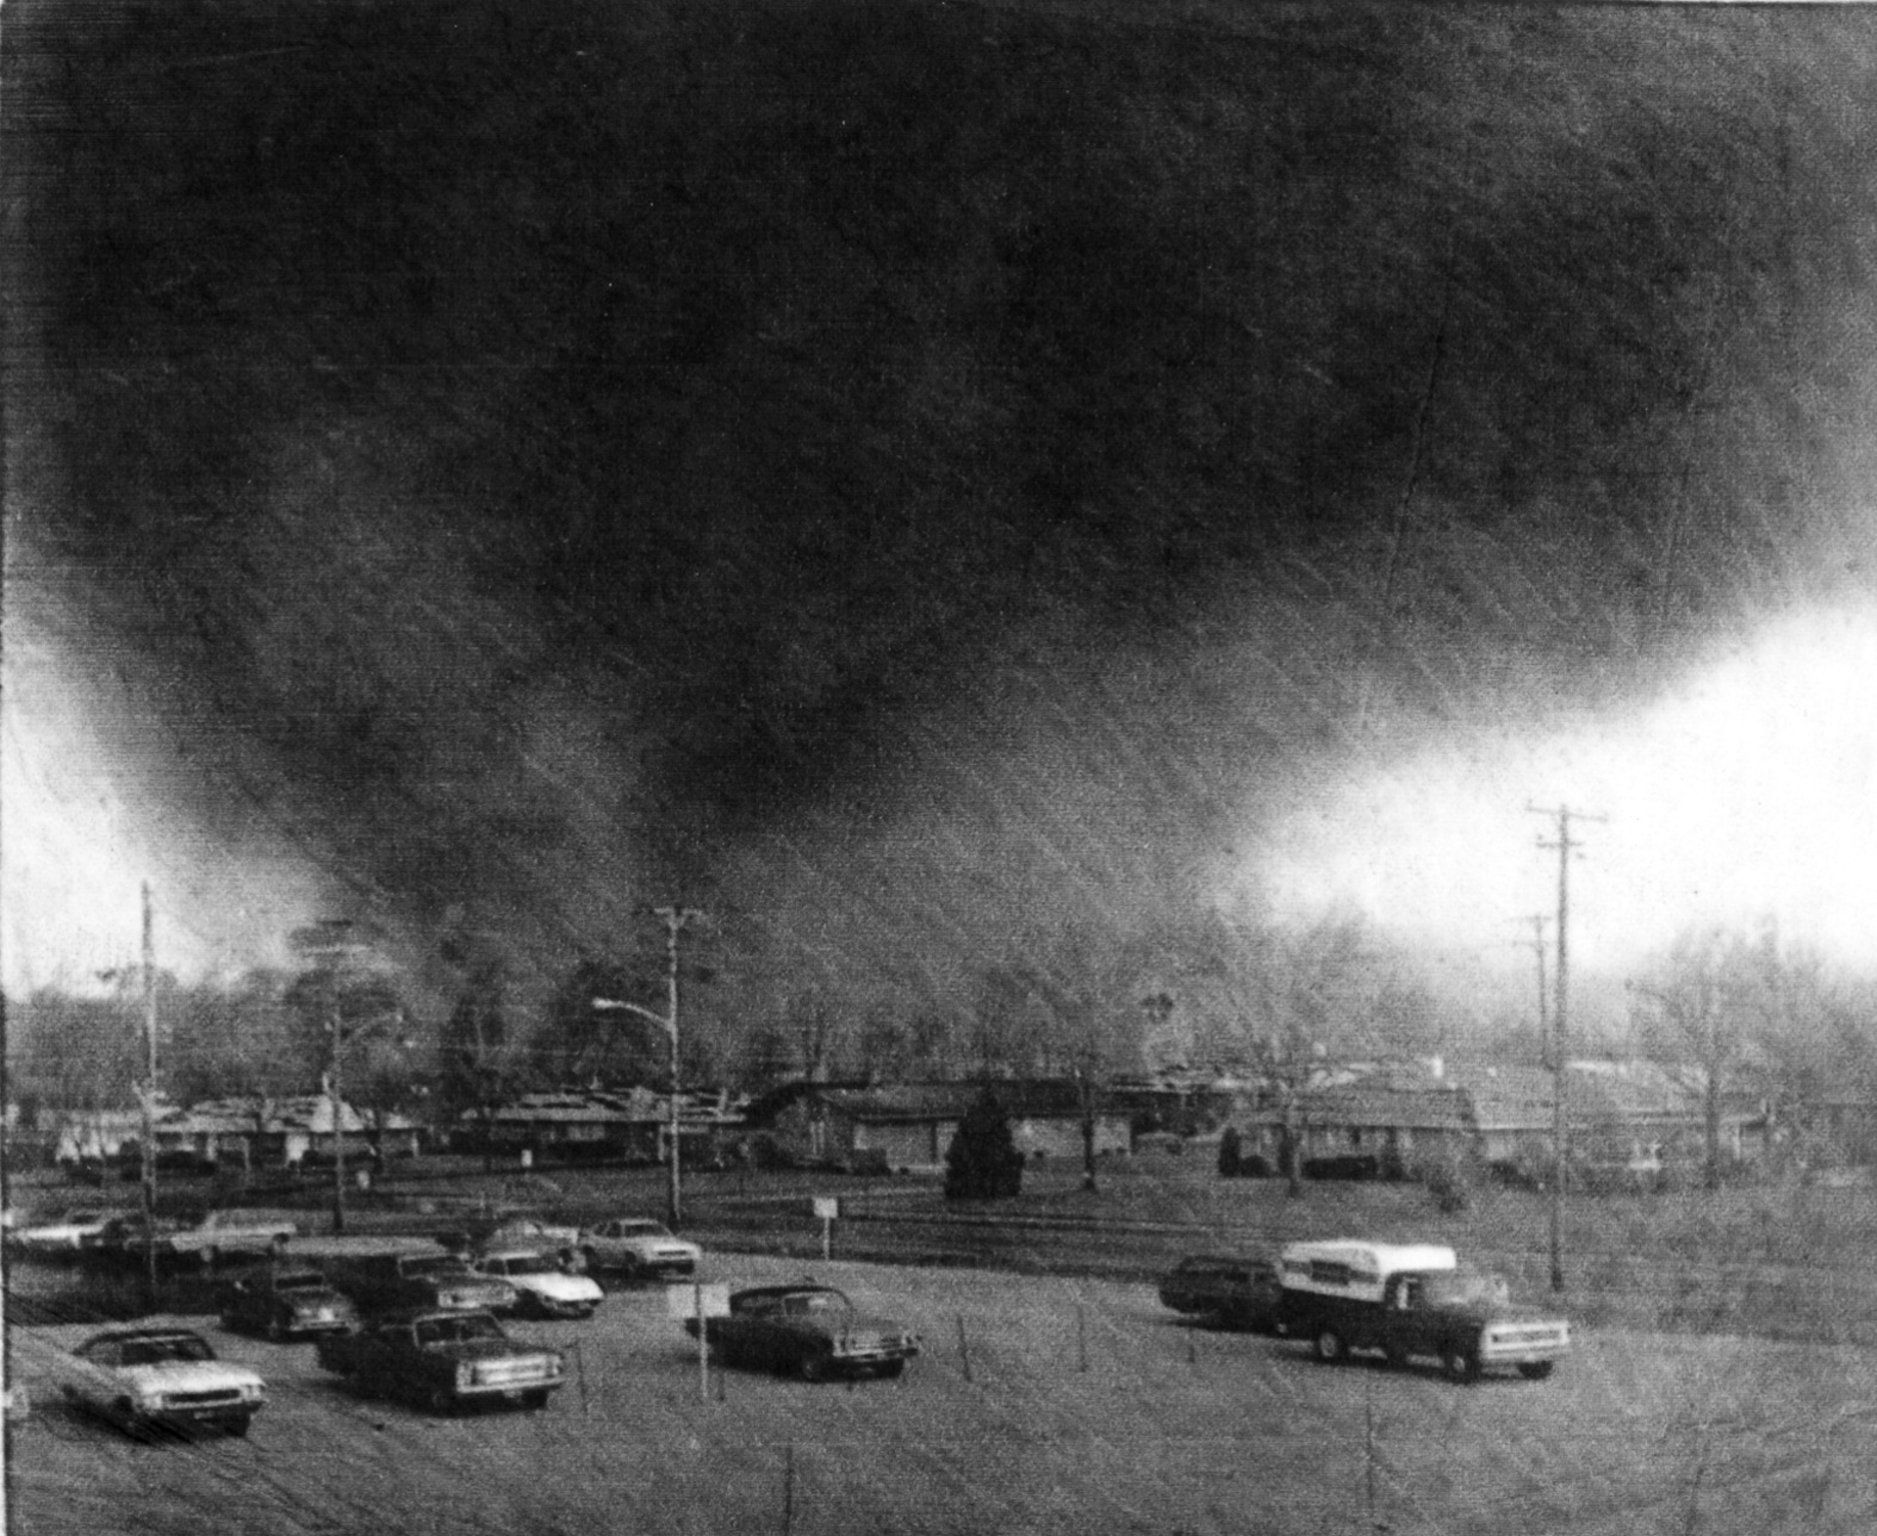 A Tornado Funnel Is Shown Moving Through Xenia In 1974 With